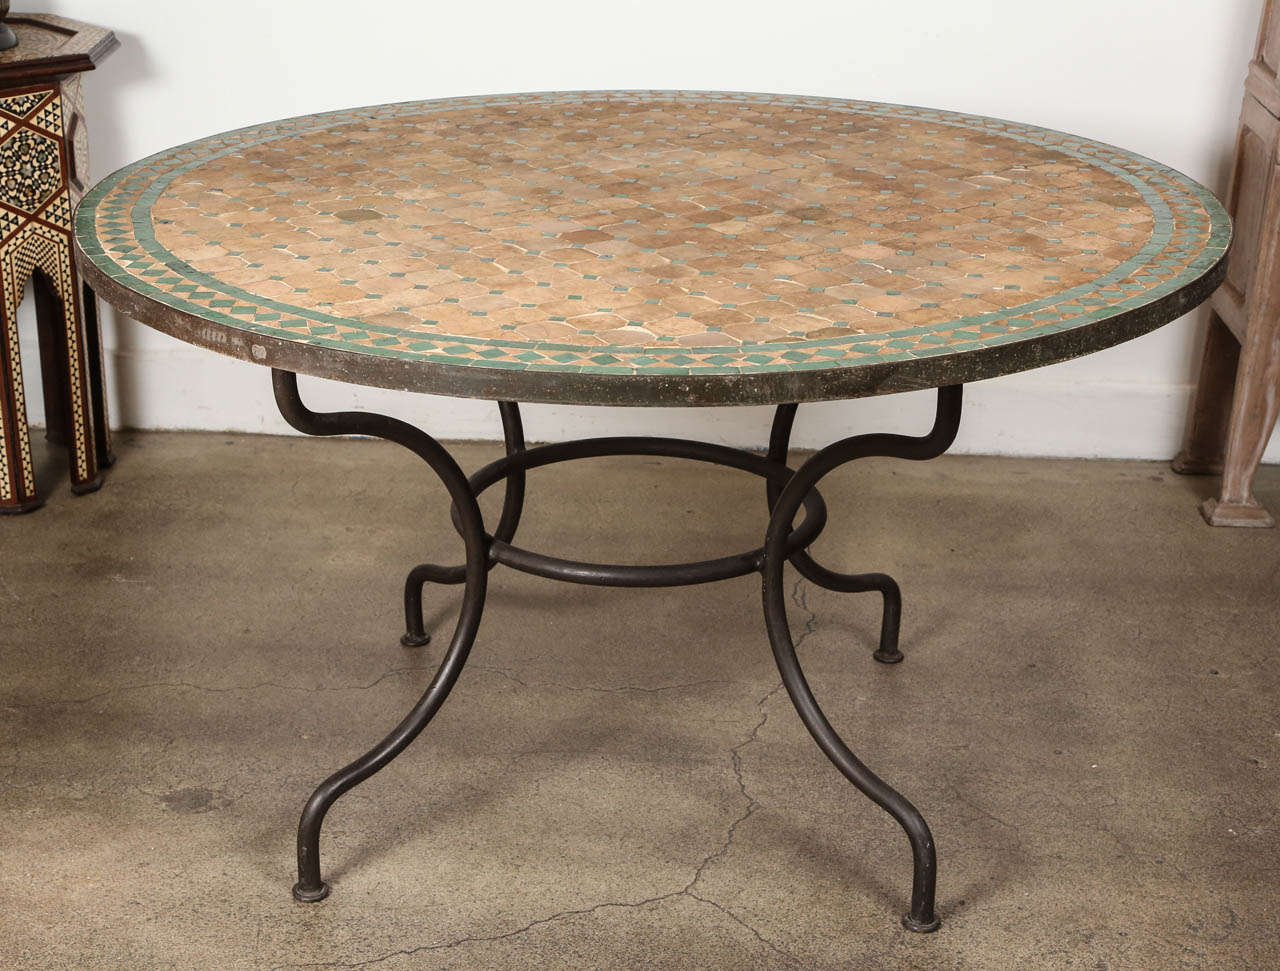 Traditional Moroccan Green And Tan Mosaic Tile Table Dining Height Could Be Used Indoor